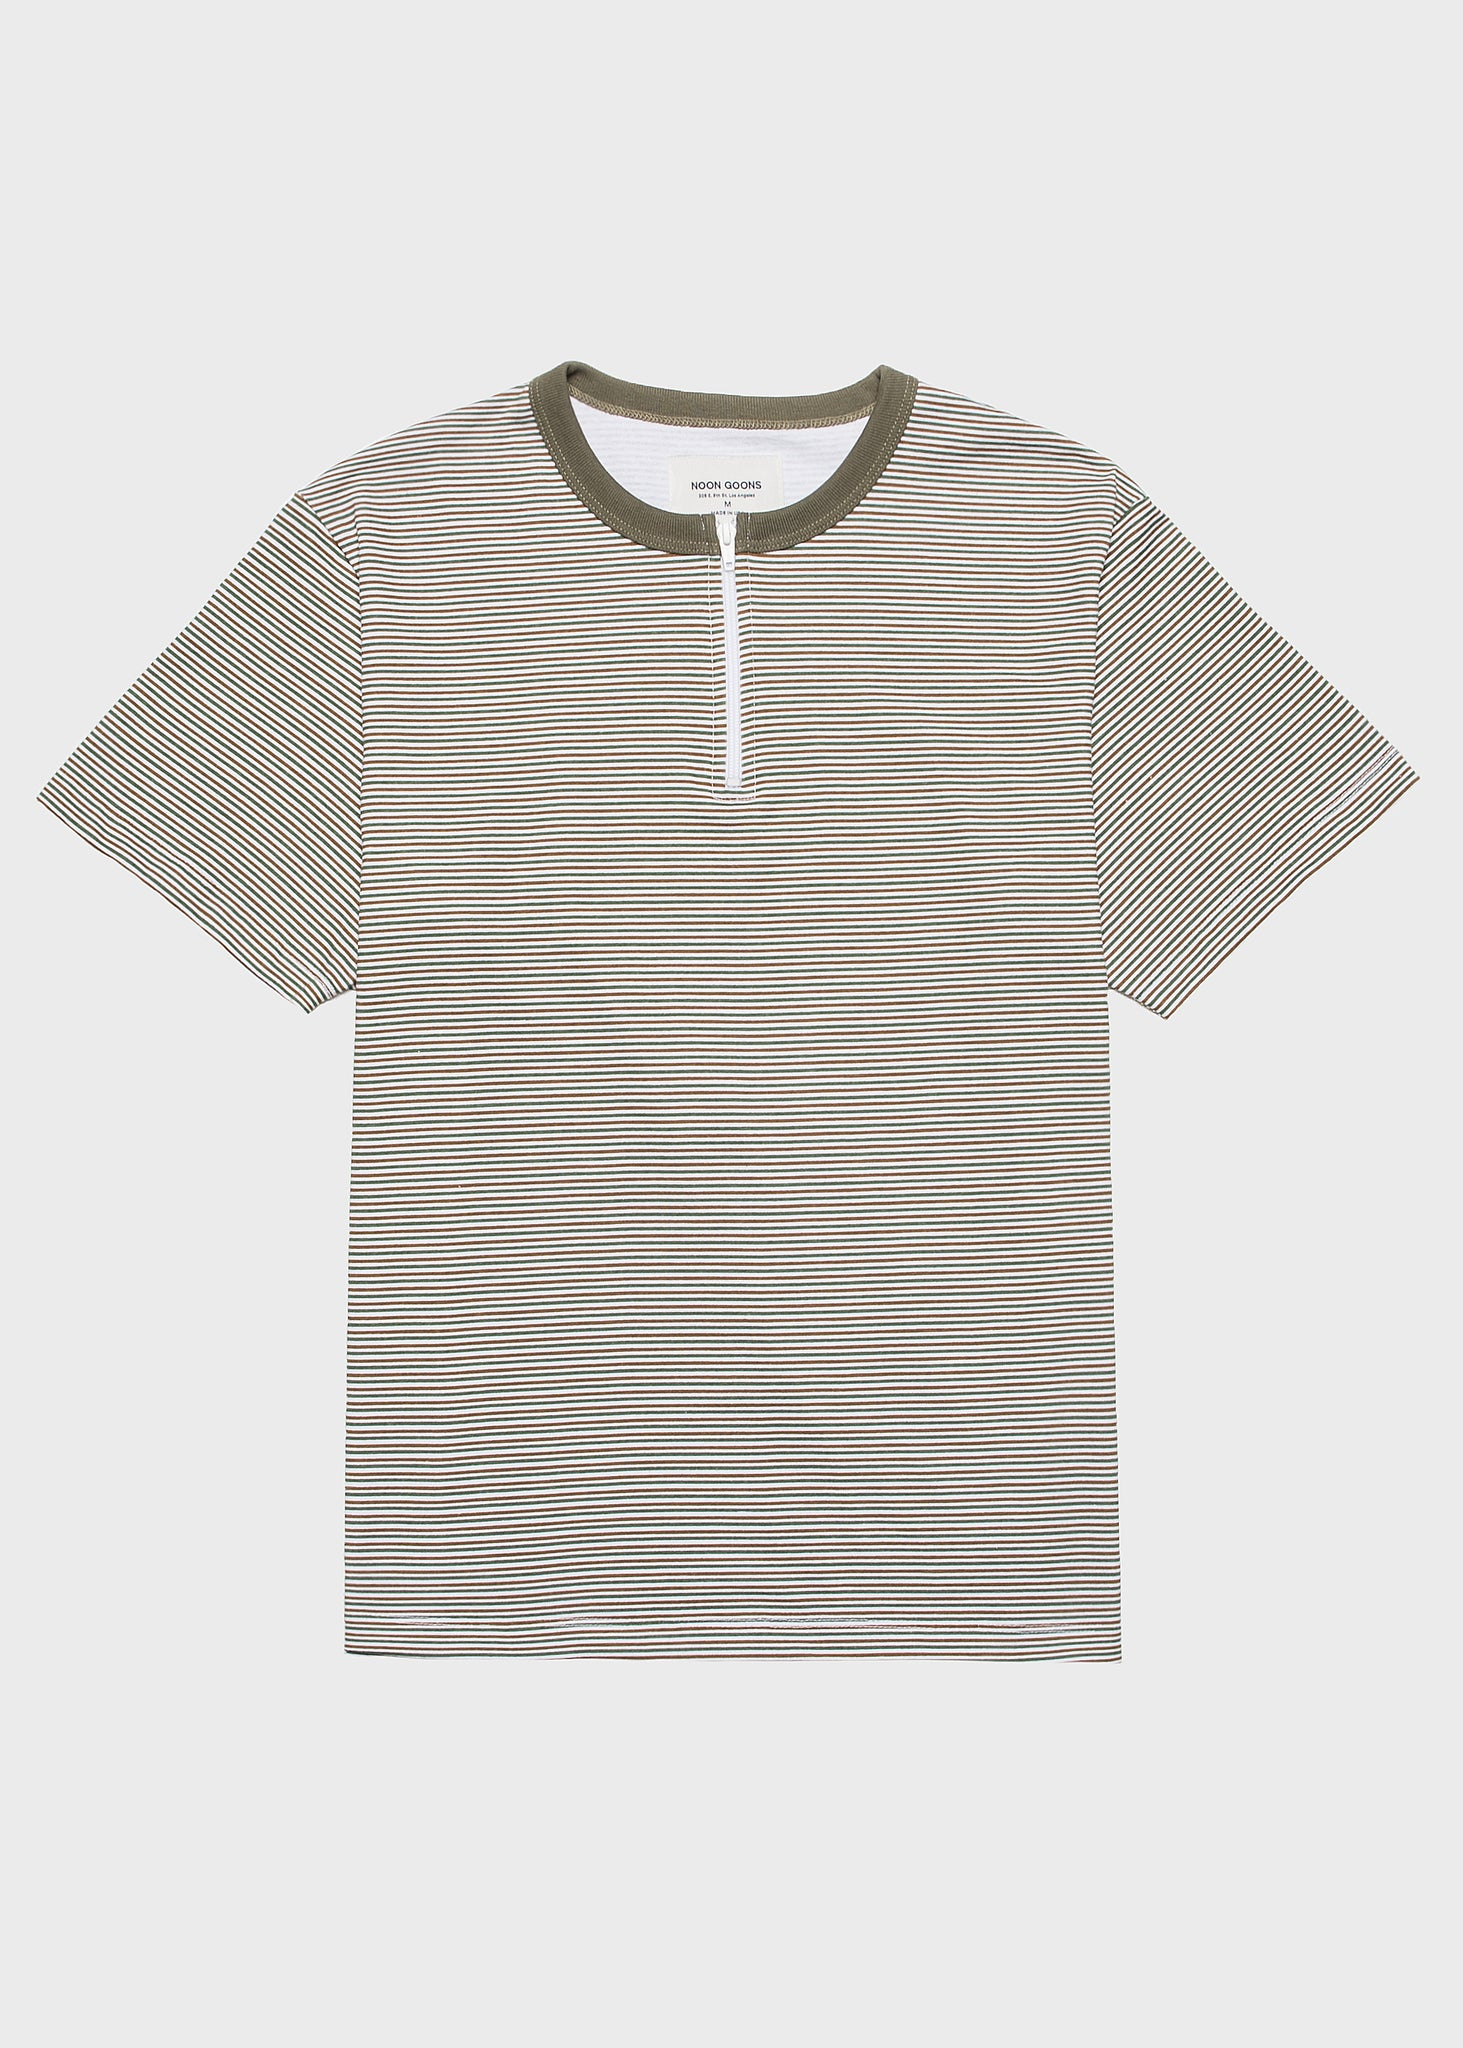 Surfer Zip T-Shirt Pale Yellow